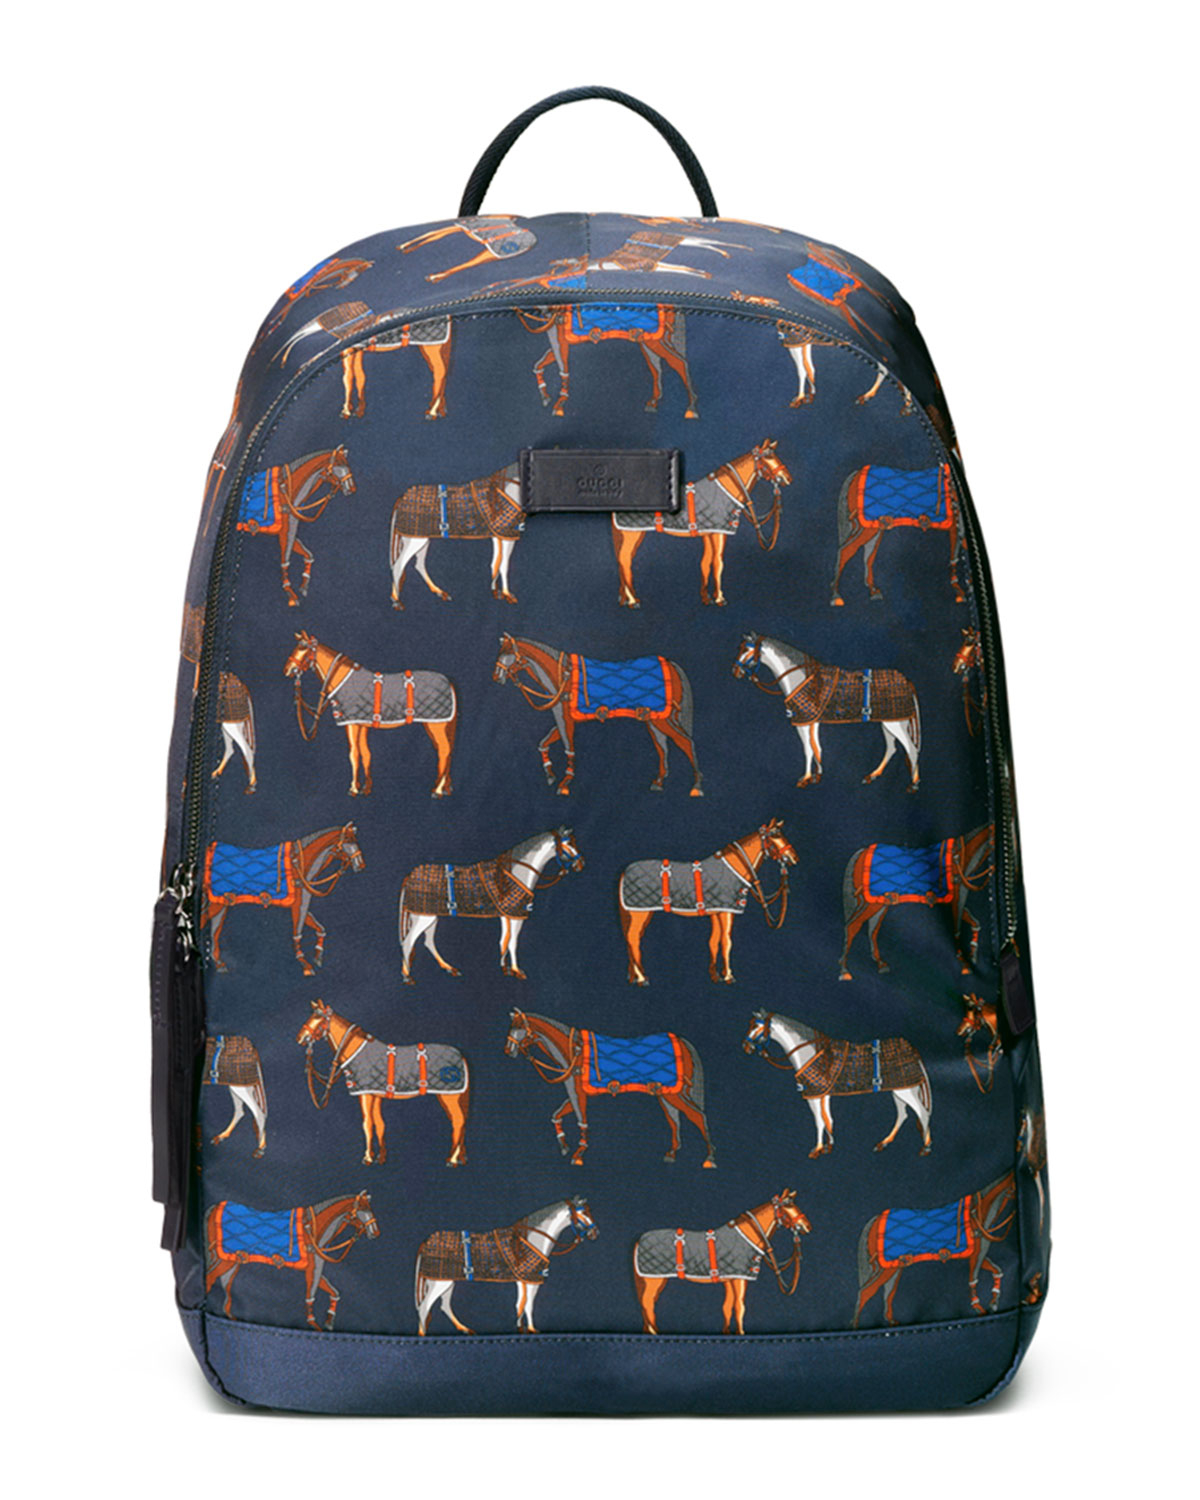 Lyst - Gucci Horse-print Backpack in Blue for Men 3347b1d2eb